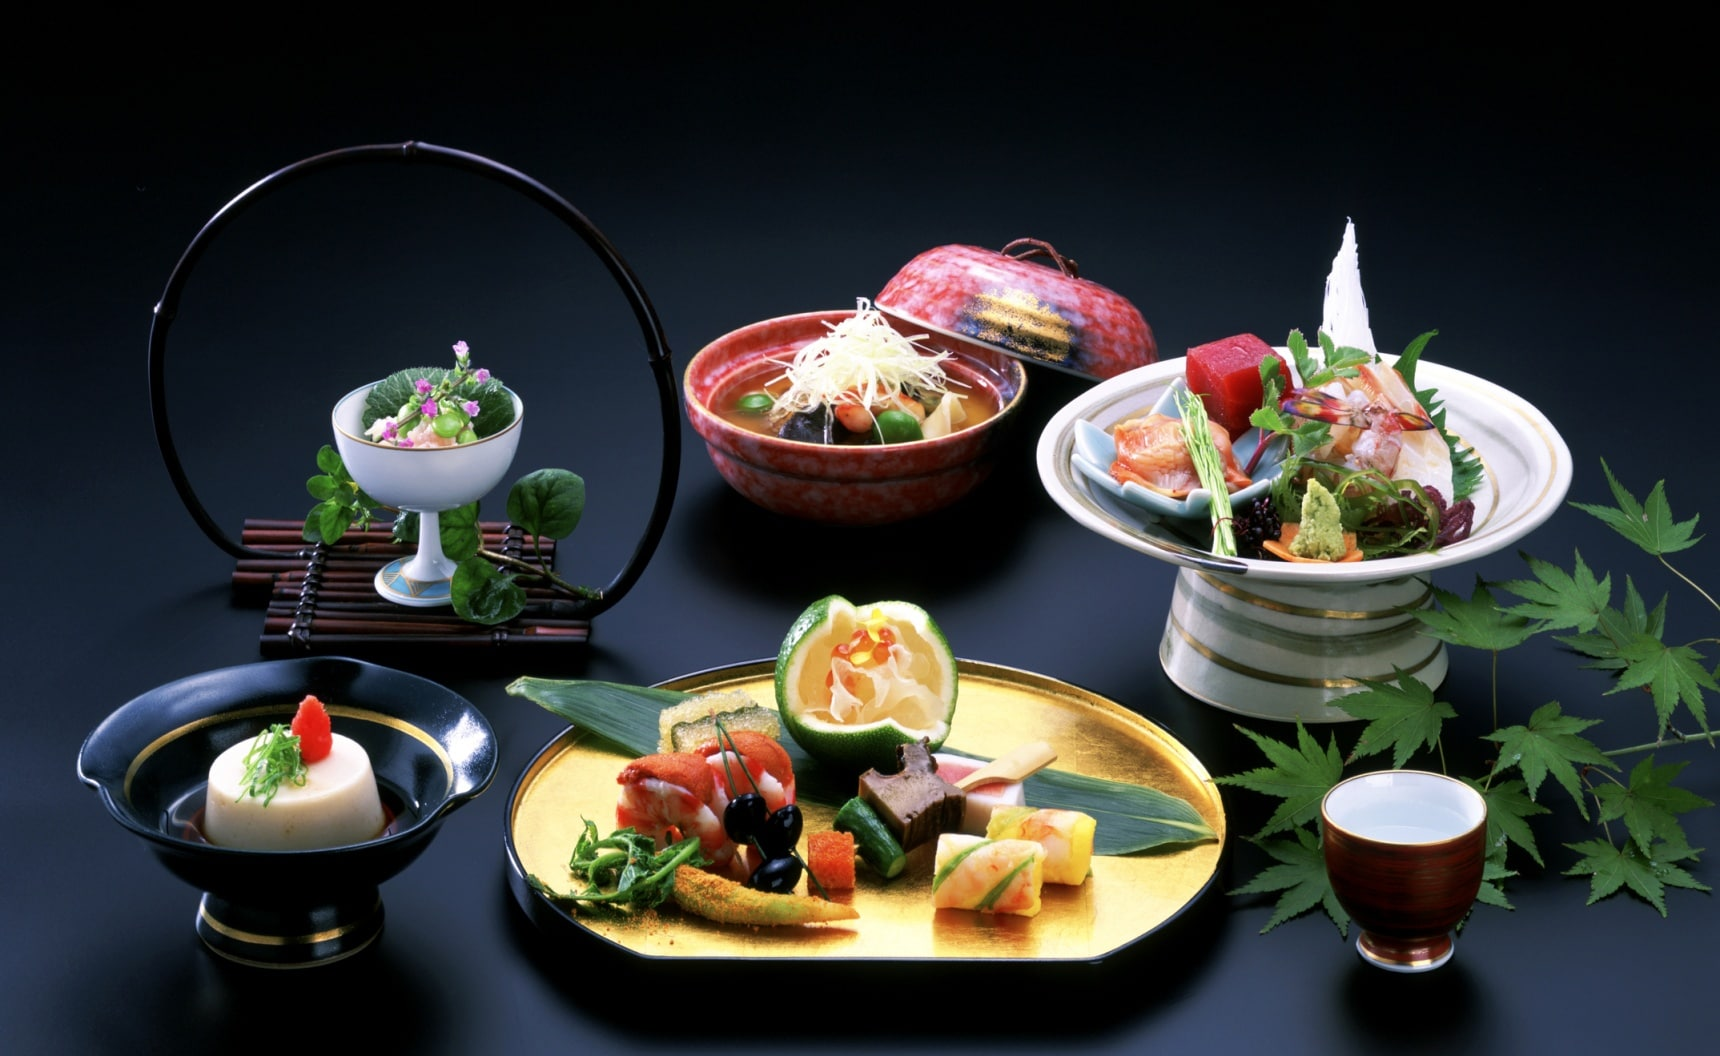 The Japanese Secret to Longevity Through Food